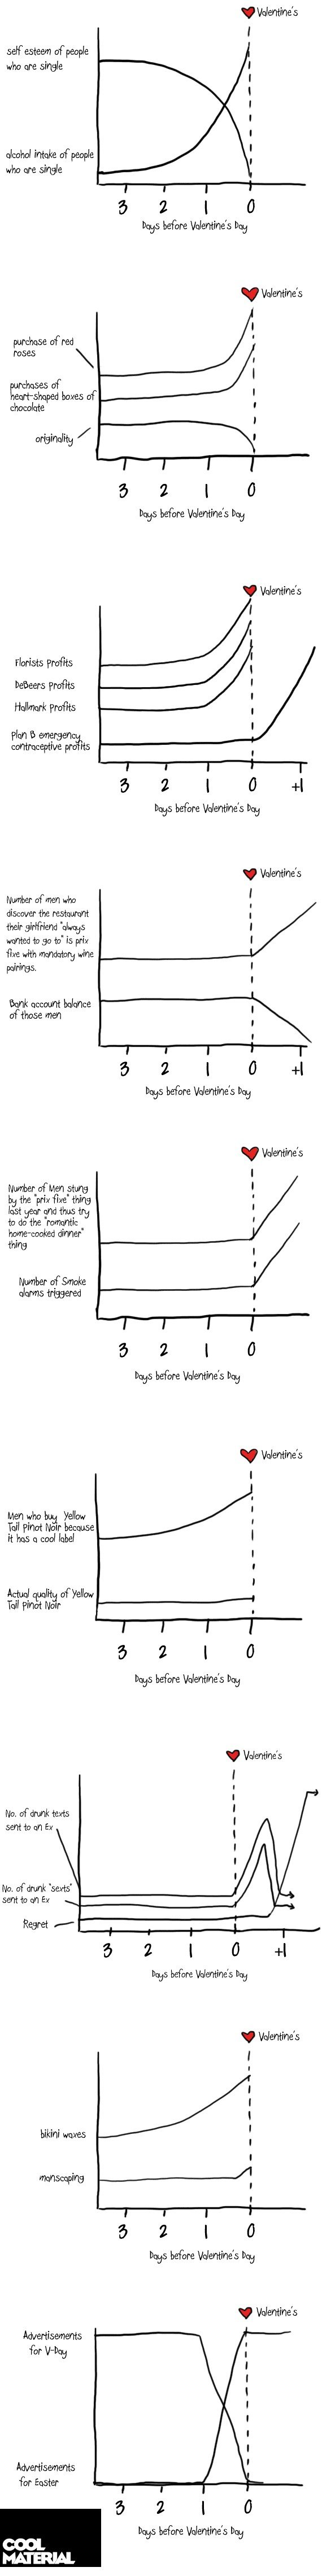 This Just About Sums Up Valentine's Day. . V Valentine' s sdf esteem who are shale I intake of tooie ', who are single Ms before Valentine' s by V Valentines pu